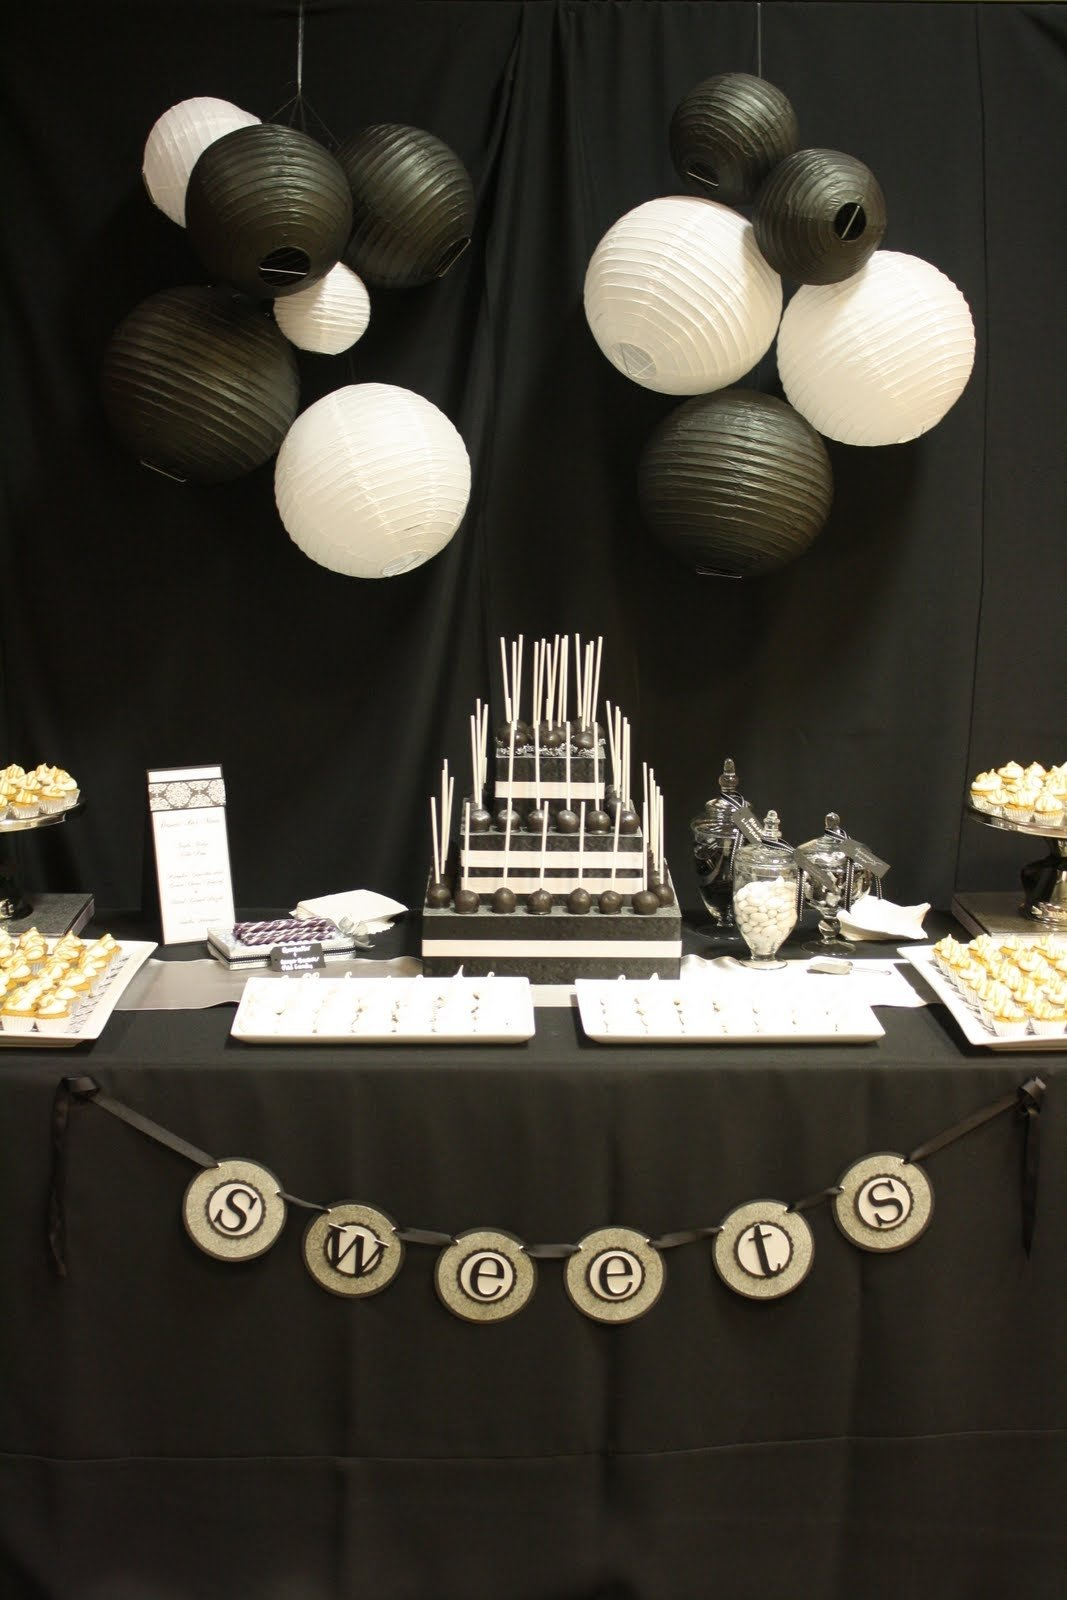 10 Stylish Black And White Party Decoration Ideas 56 elegant black and white wedding dessert tables white cake pops 2020